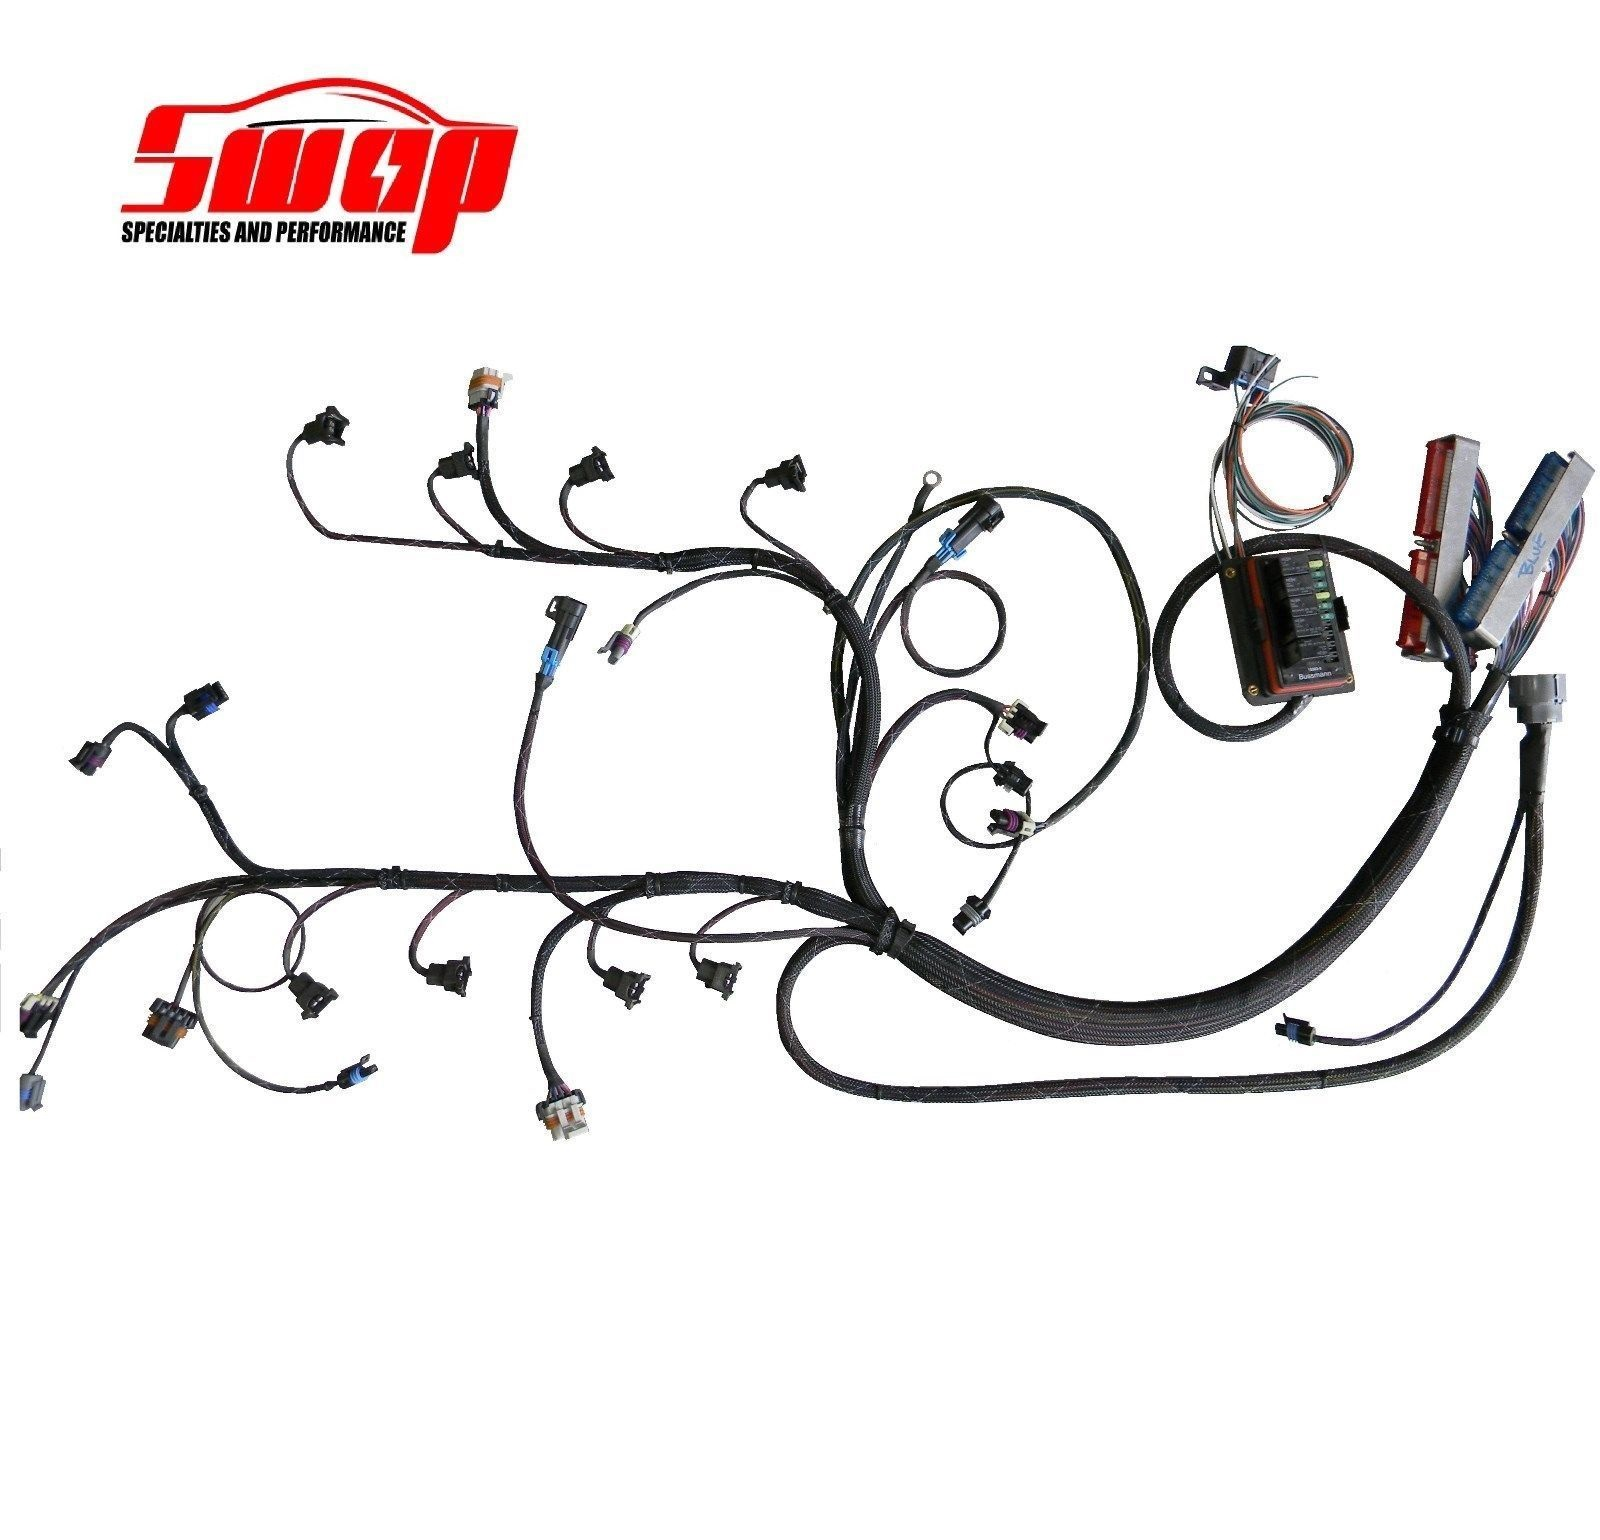 2 4 Ecotec Stand Alone Wiring Harness : 37 Wiring Diagram